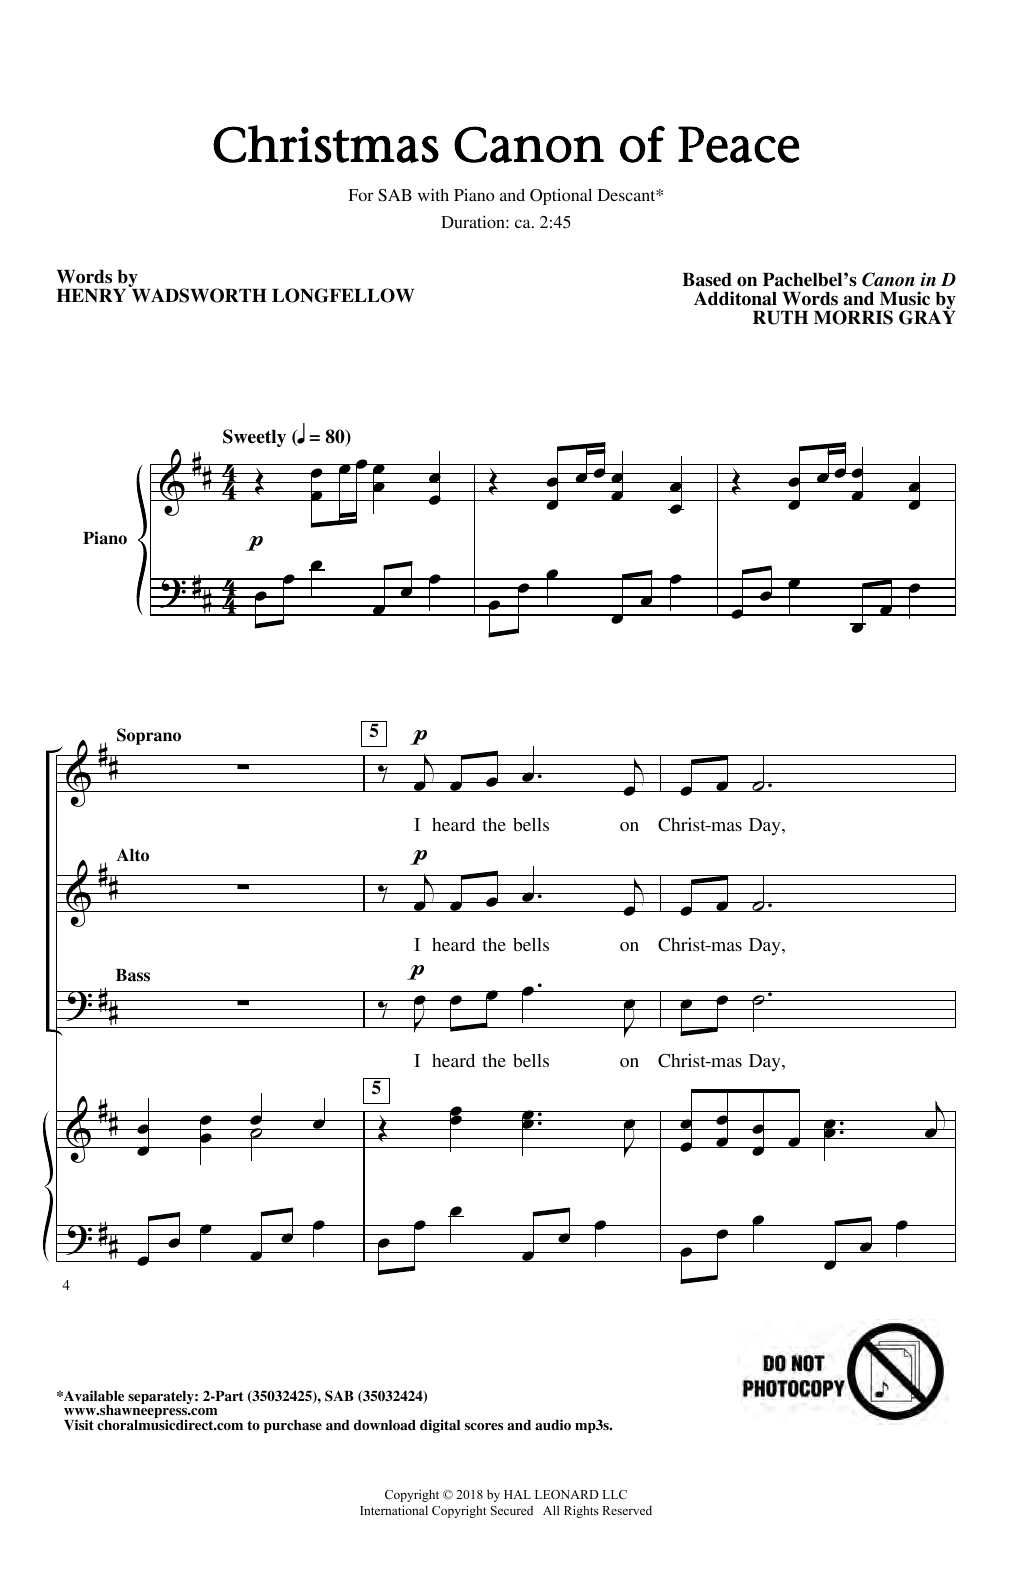 Johann Pachelbel Christmas Canon Of Peace (arr. Ruth Morris Gray) sheet music notes and chords